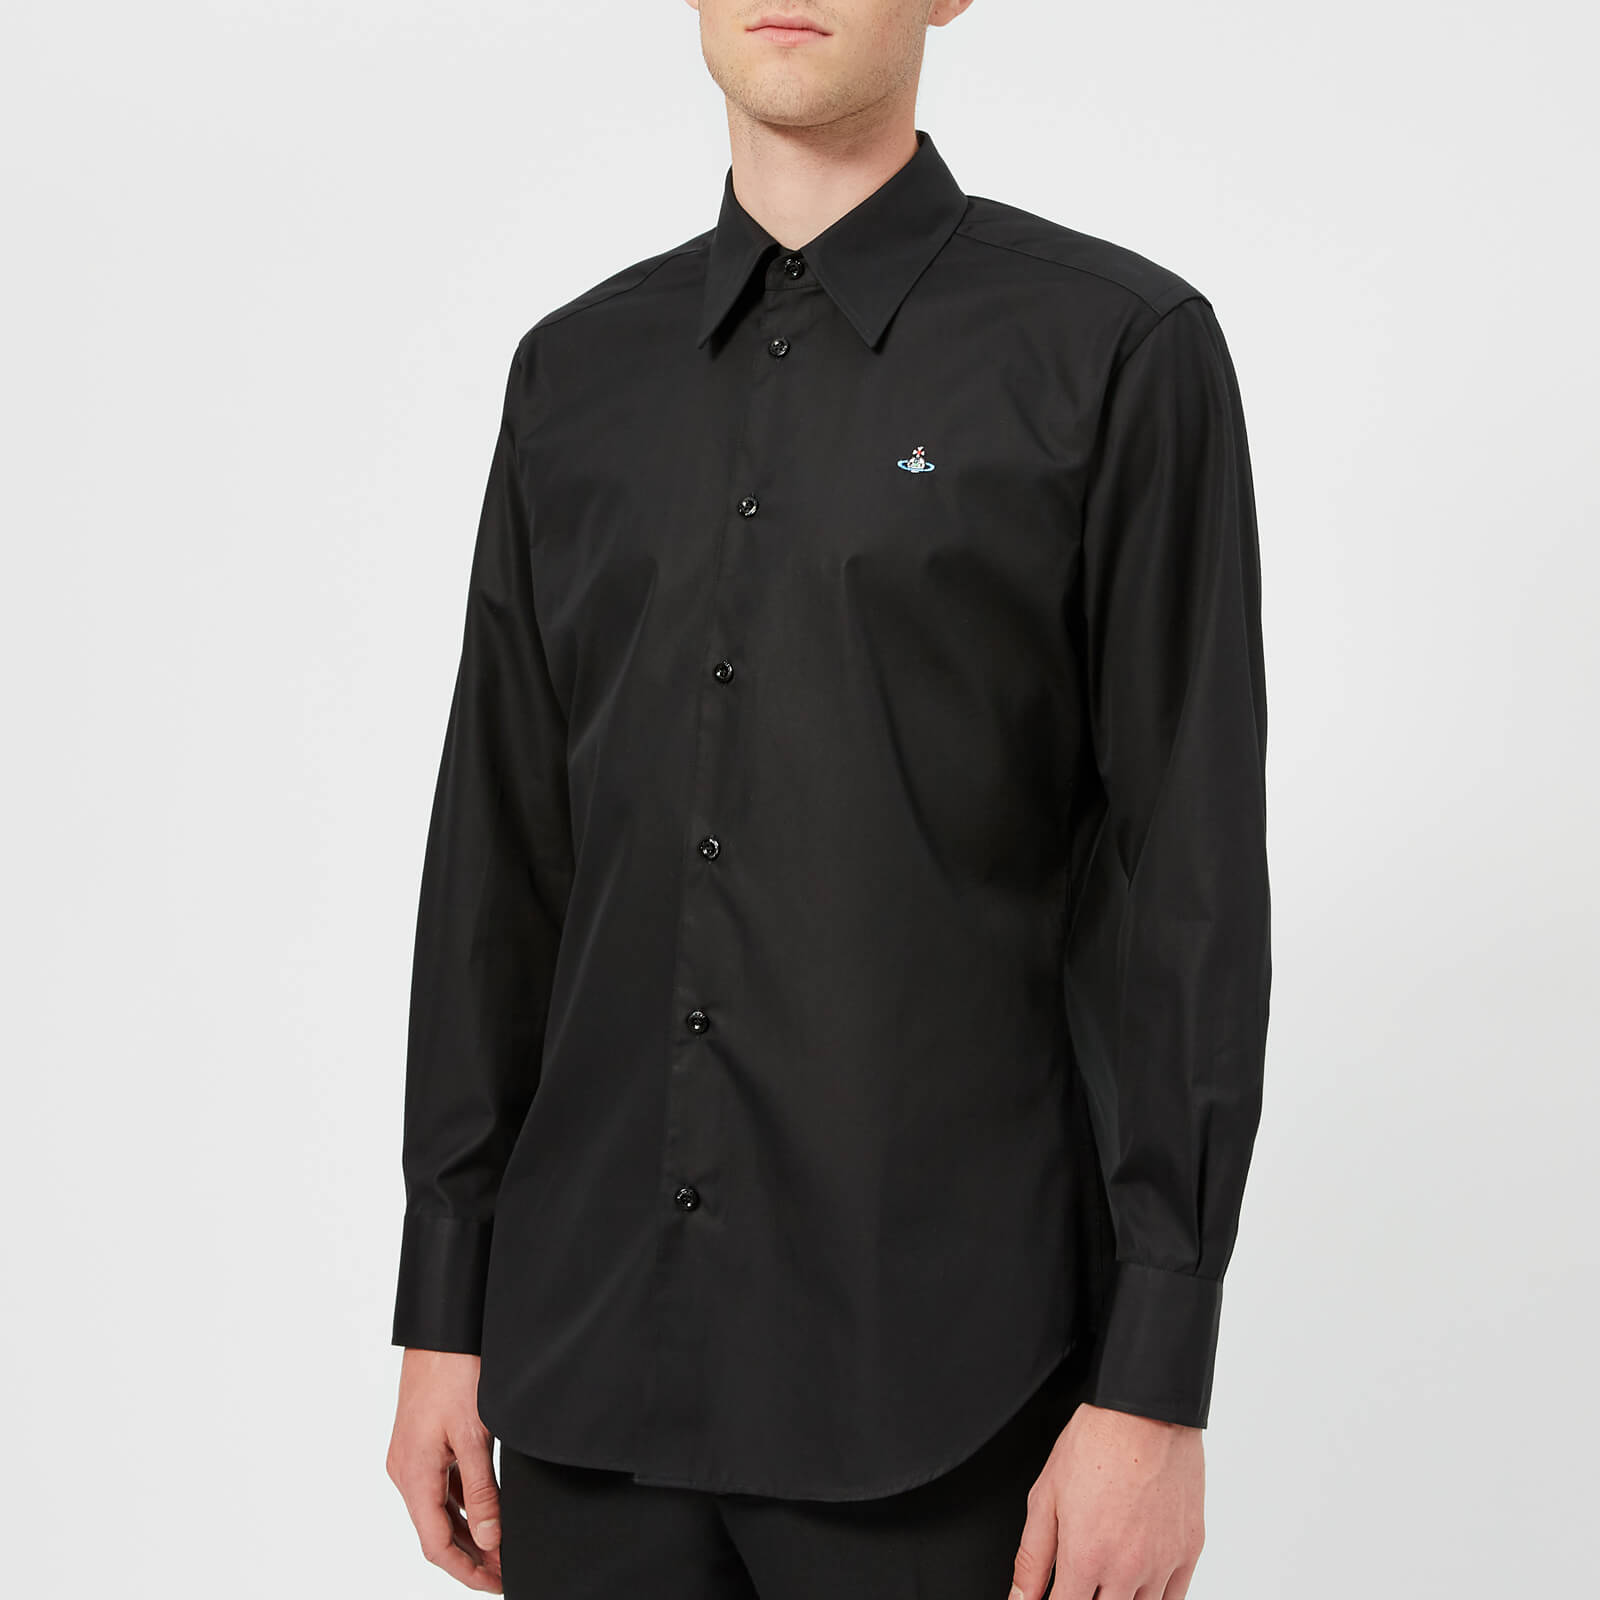 97a8f7b6ea7f7 Vivienne Westwood Men s Firm Poplin Classic Shirt - Black - Free UK  Delivery over £50